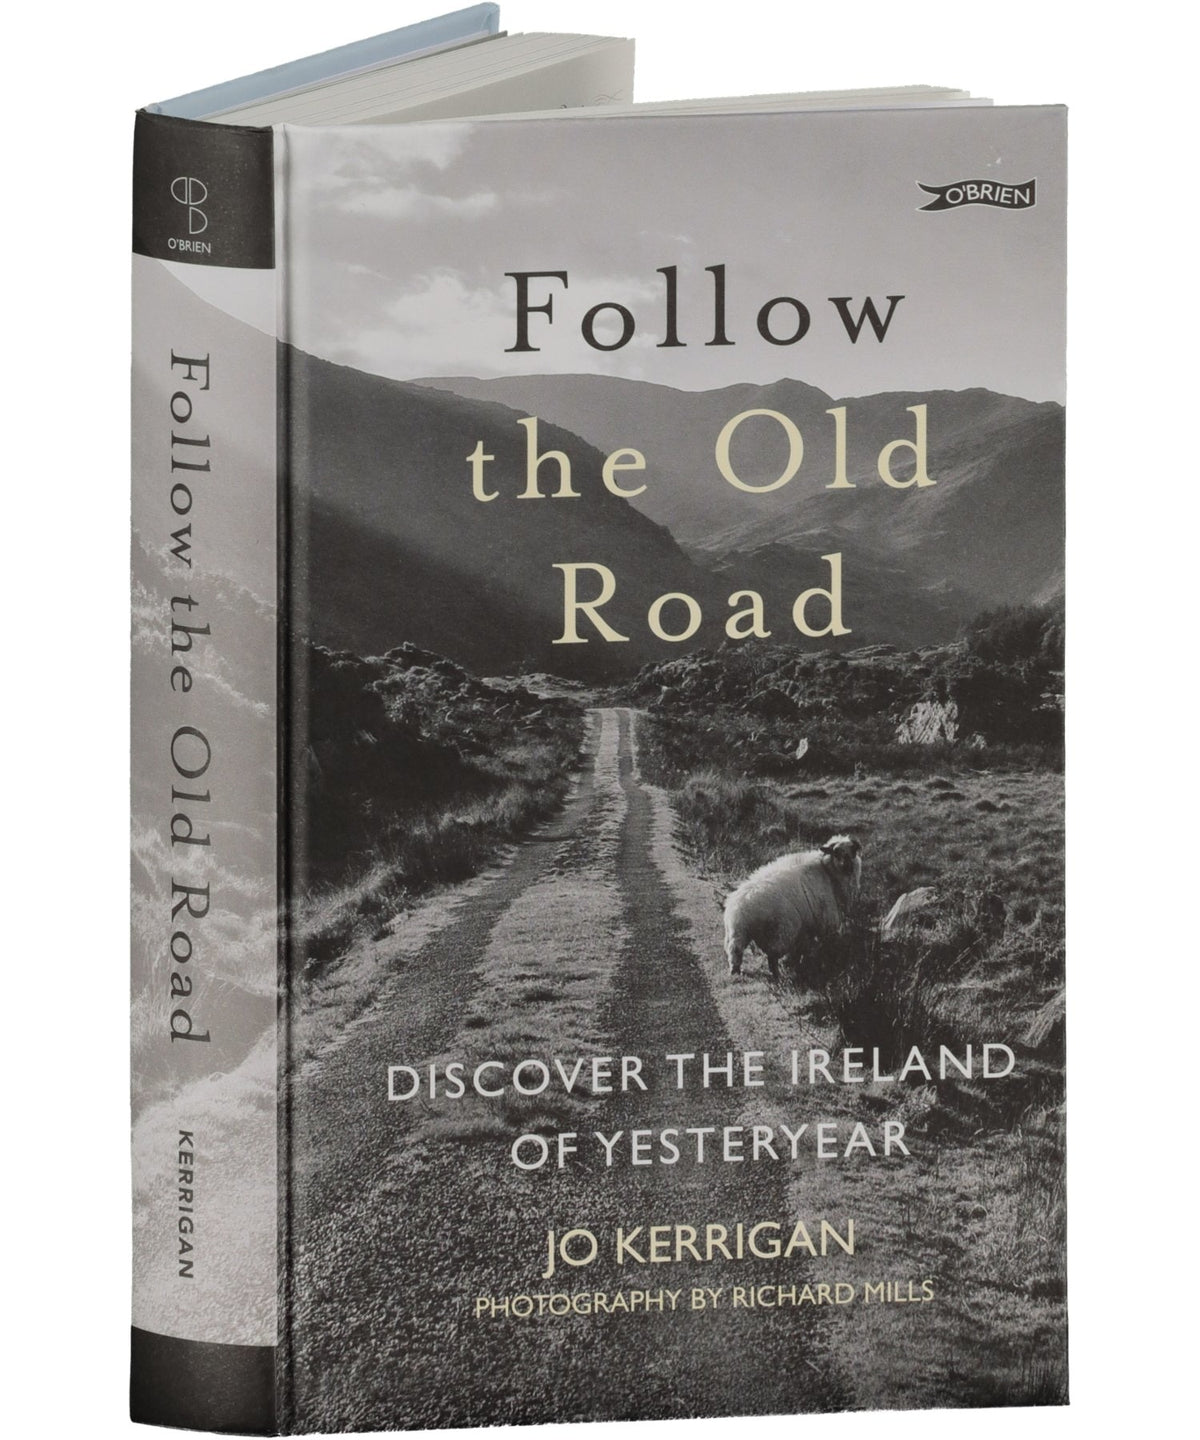 Follow The Old Road OBrien Press Books